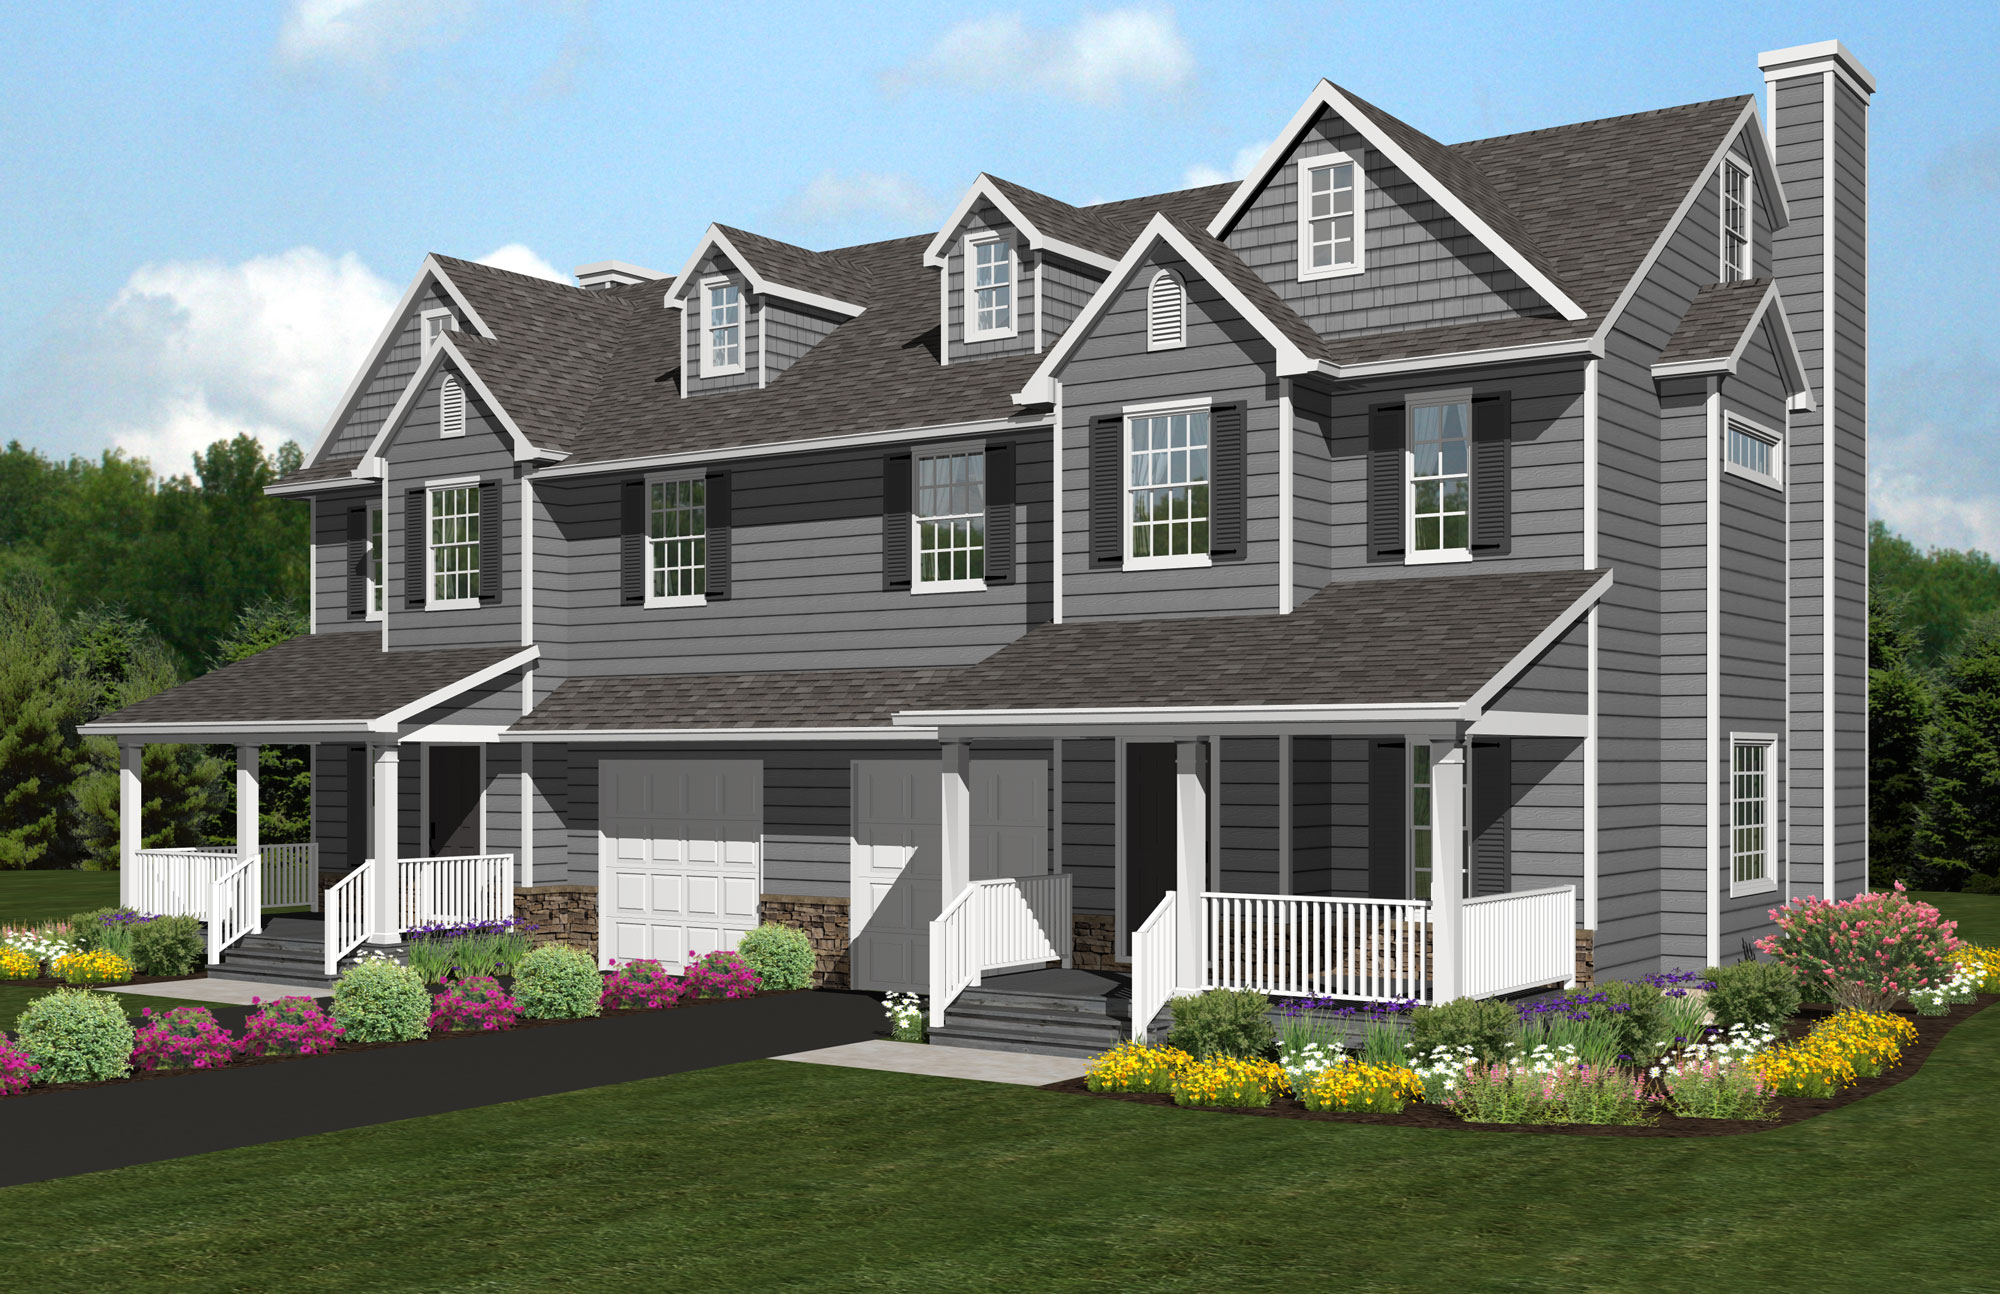 87f3ed954b73d5a3e383_215-217_Palsted_front_rendering.jpg